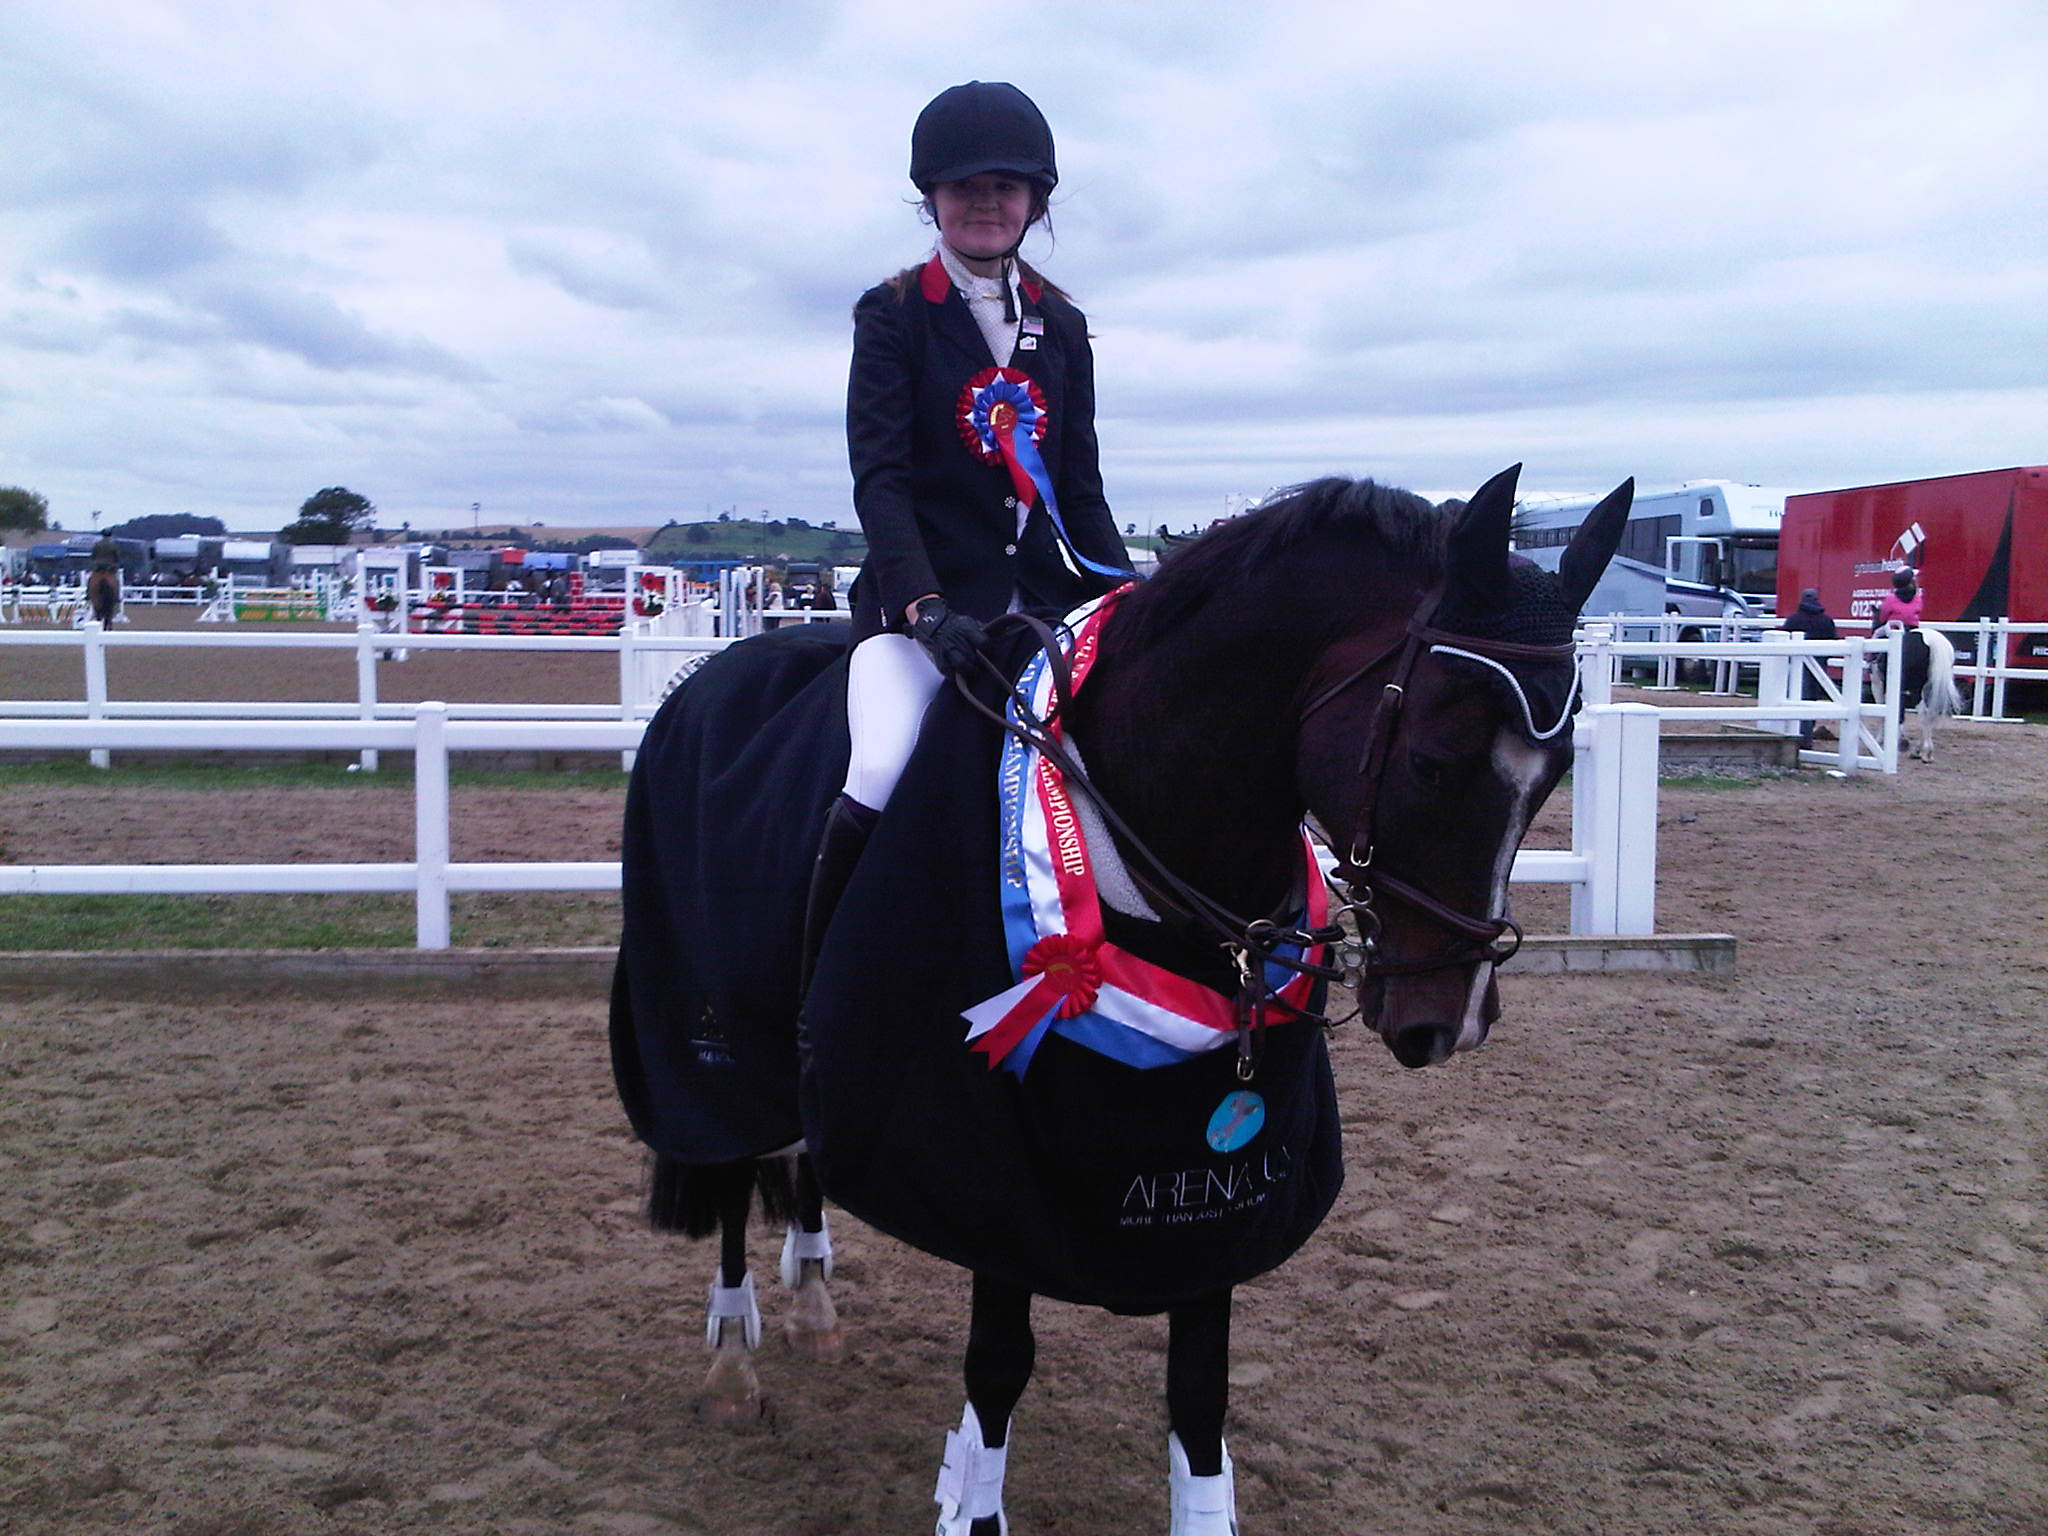 Hannah Price 80cm horse champion - Still time to get points by joining the BS Club